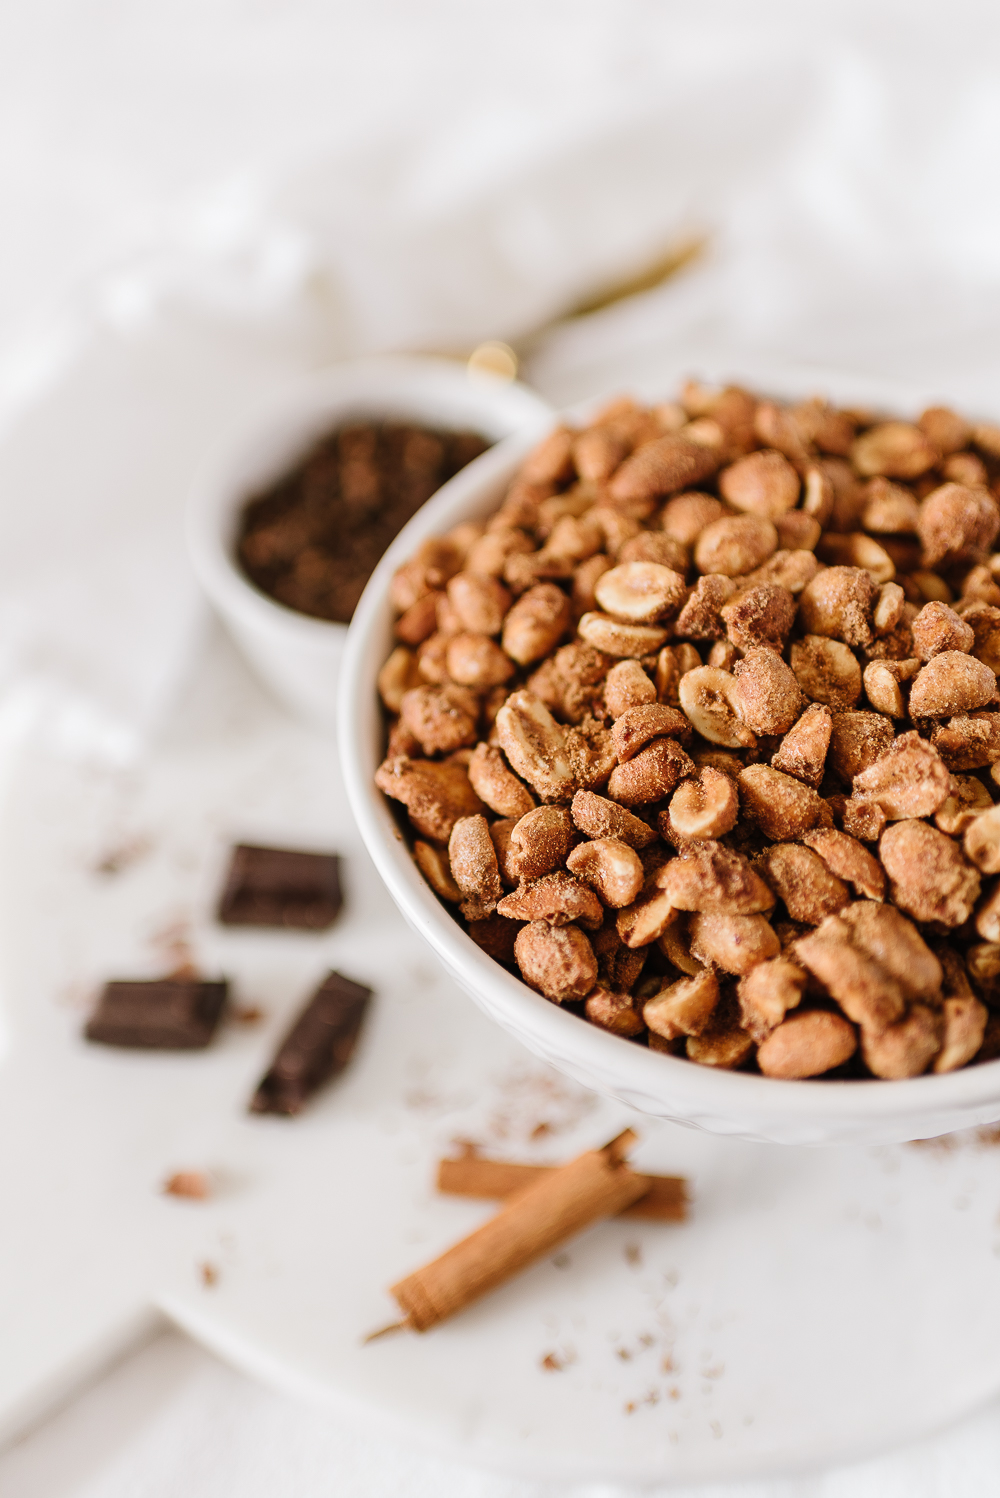 Spiced candied nuts roasted in a bowl